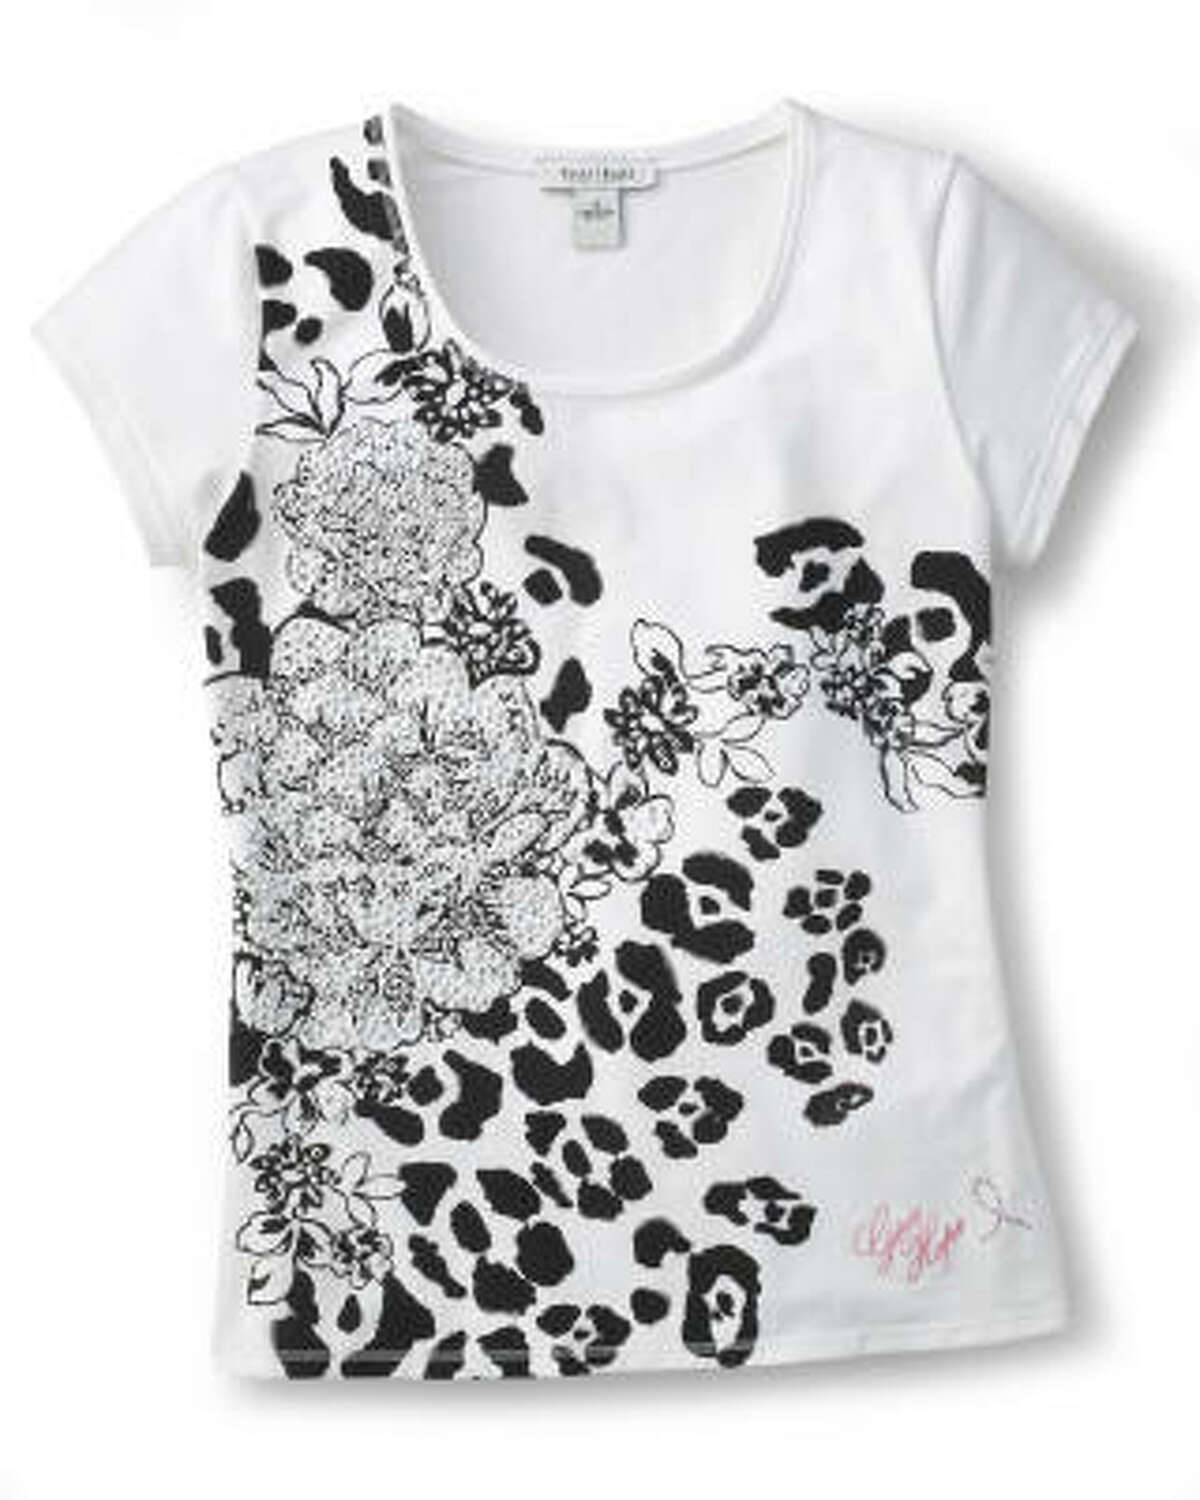 The Give Hope leopard floral tee, $38, benefits the Beyond Breast Cancer organization. Available at White House Black Market.